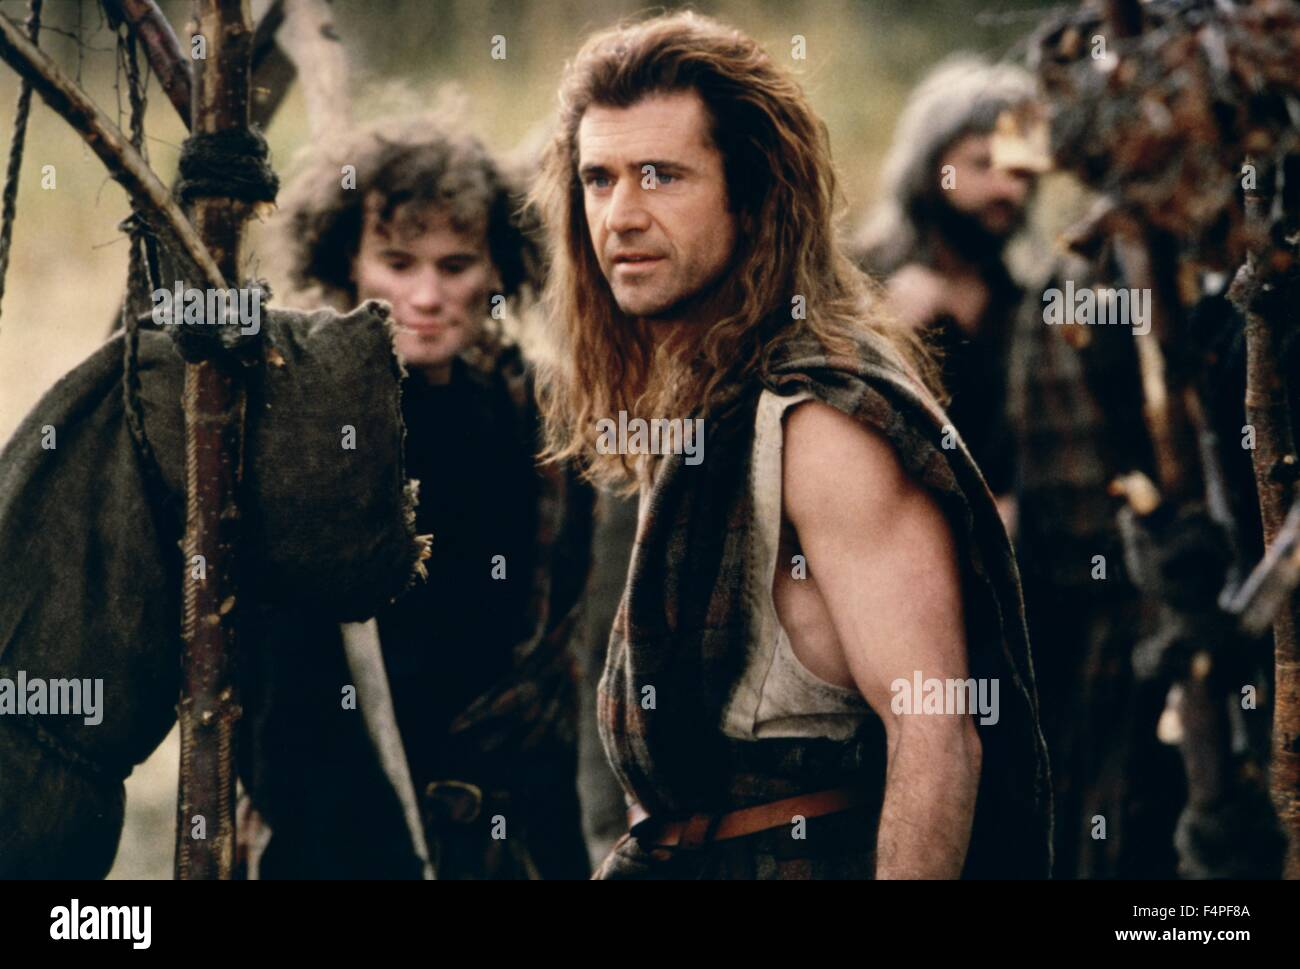 Mel Gibson / Braveheart / 1995 directed by Mel Gibson - Stock Image